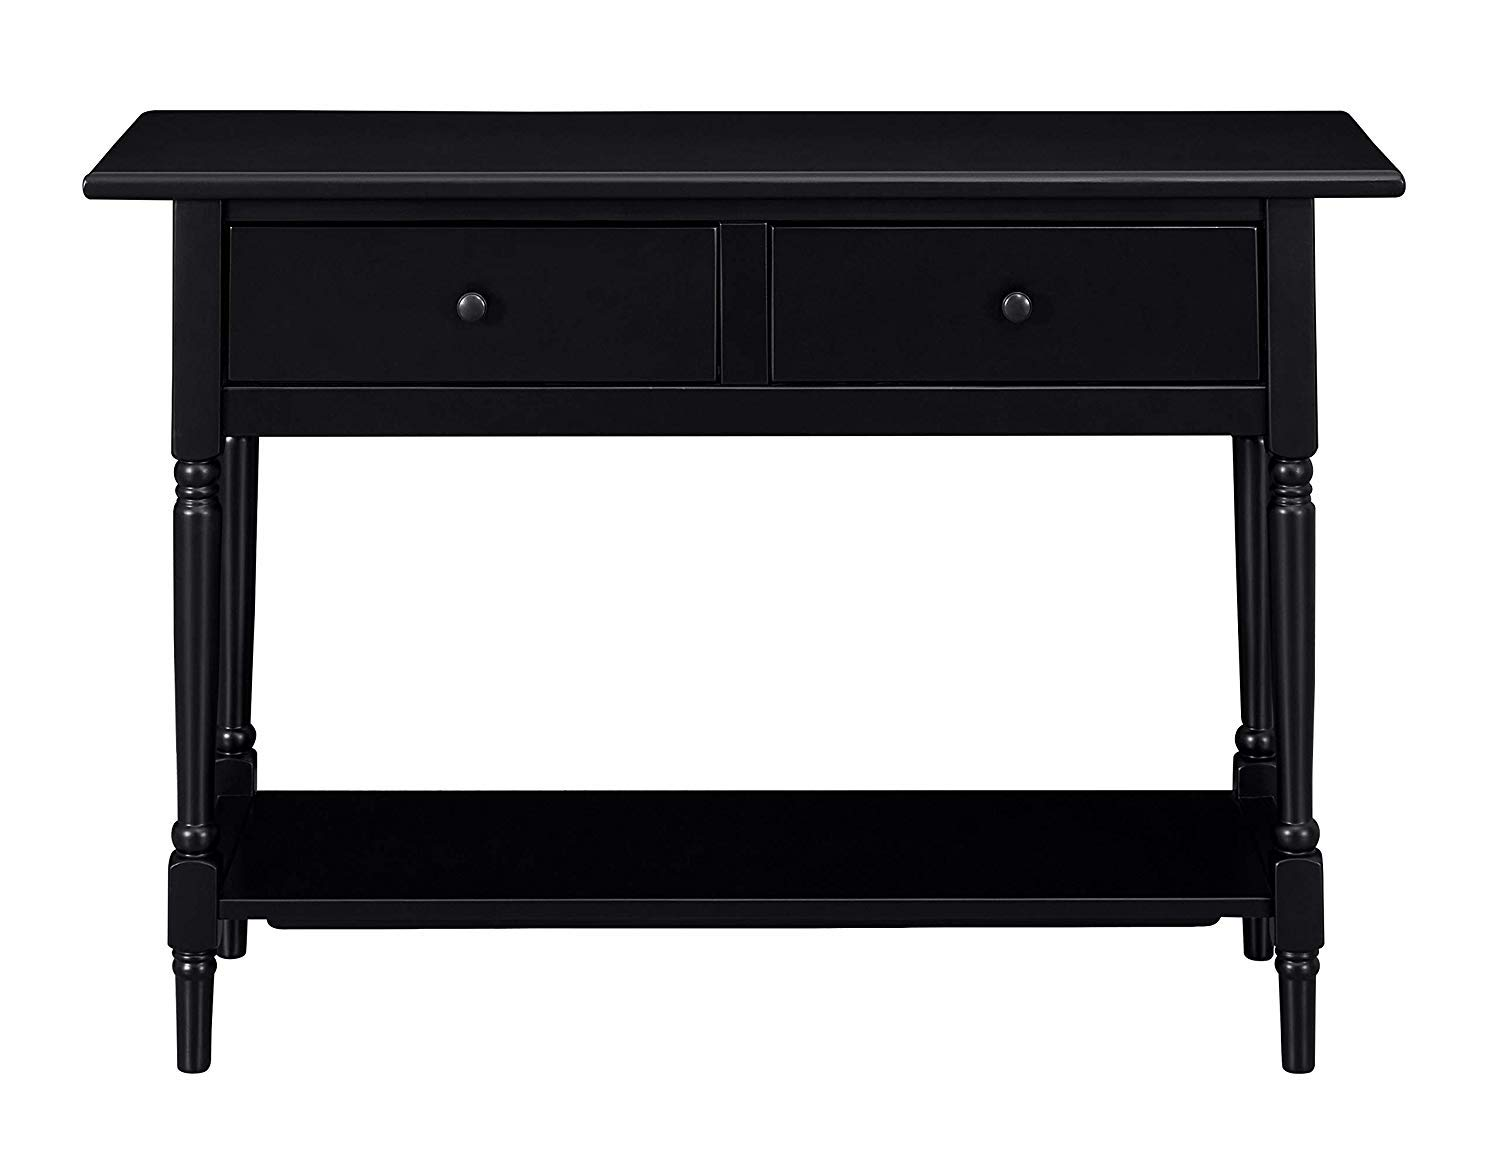 MUSEHOMEINC Wood Classic Console Table,with 2-Drawers and 1- Shelf,Modern Turned Wood Leg,Round Metal knobs,Black Finish